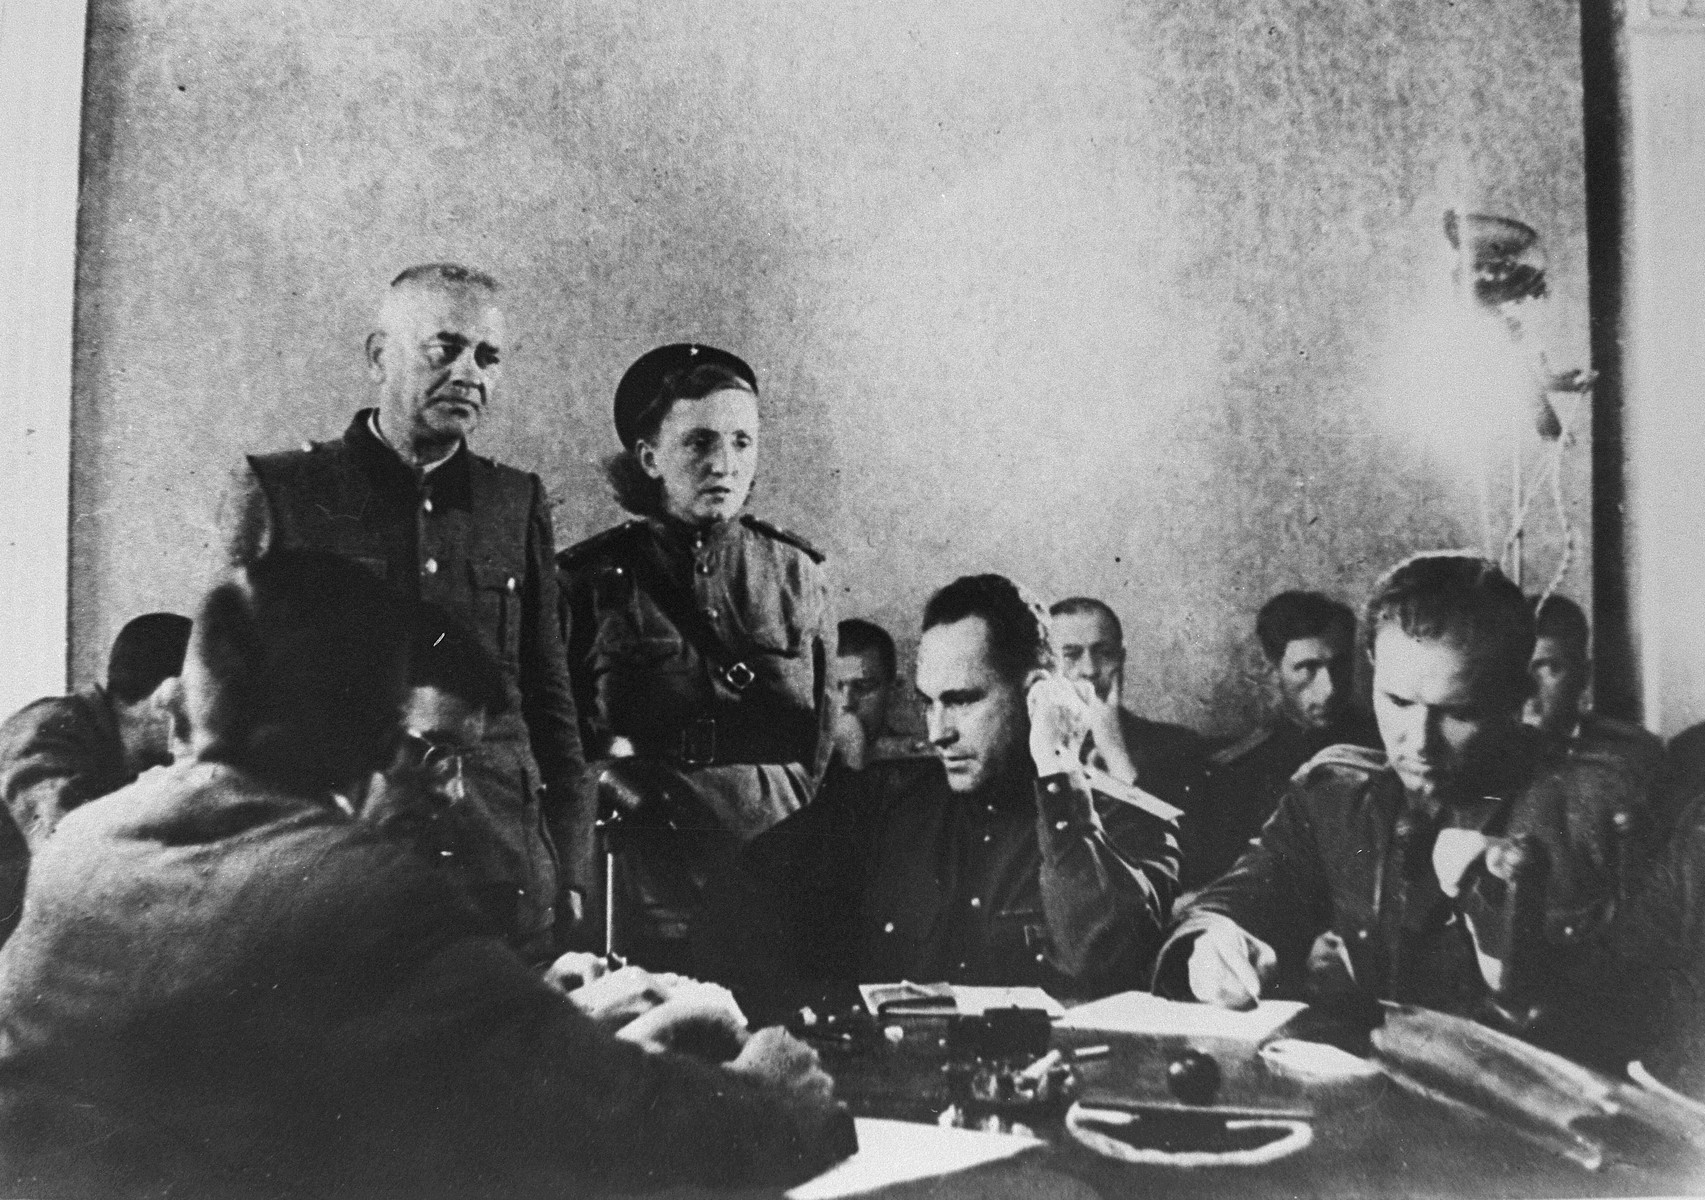 Former SS-Obersturmfuehrer (1st Lieutenant) Anton Thernes testifies to the Polish-Soviet joint commission investigating crimes in Majdanek.    Four months after the liberation of the Majdanek death camp by Soviet troops in July 1944, four former personnel and two former prisoners from the camp were brought to trial by a Polish Special Penal Court, charged with murdering and mistreating prisoners.  On 27 November, the trial began in Lublin, against a deputy chief of the camp, Anton Thernes, and his aide, Wilhelm Gerstenmeier, along with two guards, Hermann Vogel and Theodor Schoellen, and two kapos, Heinz Stalp and Edmund Pohlmann.  After Pohlmann committed suicide during the trial, only five defendants remained to be sentenced.  All five were found guilty on 2 December and executed near the crematoria in Majdanek the next day.